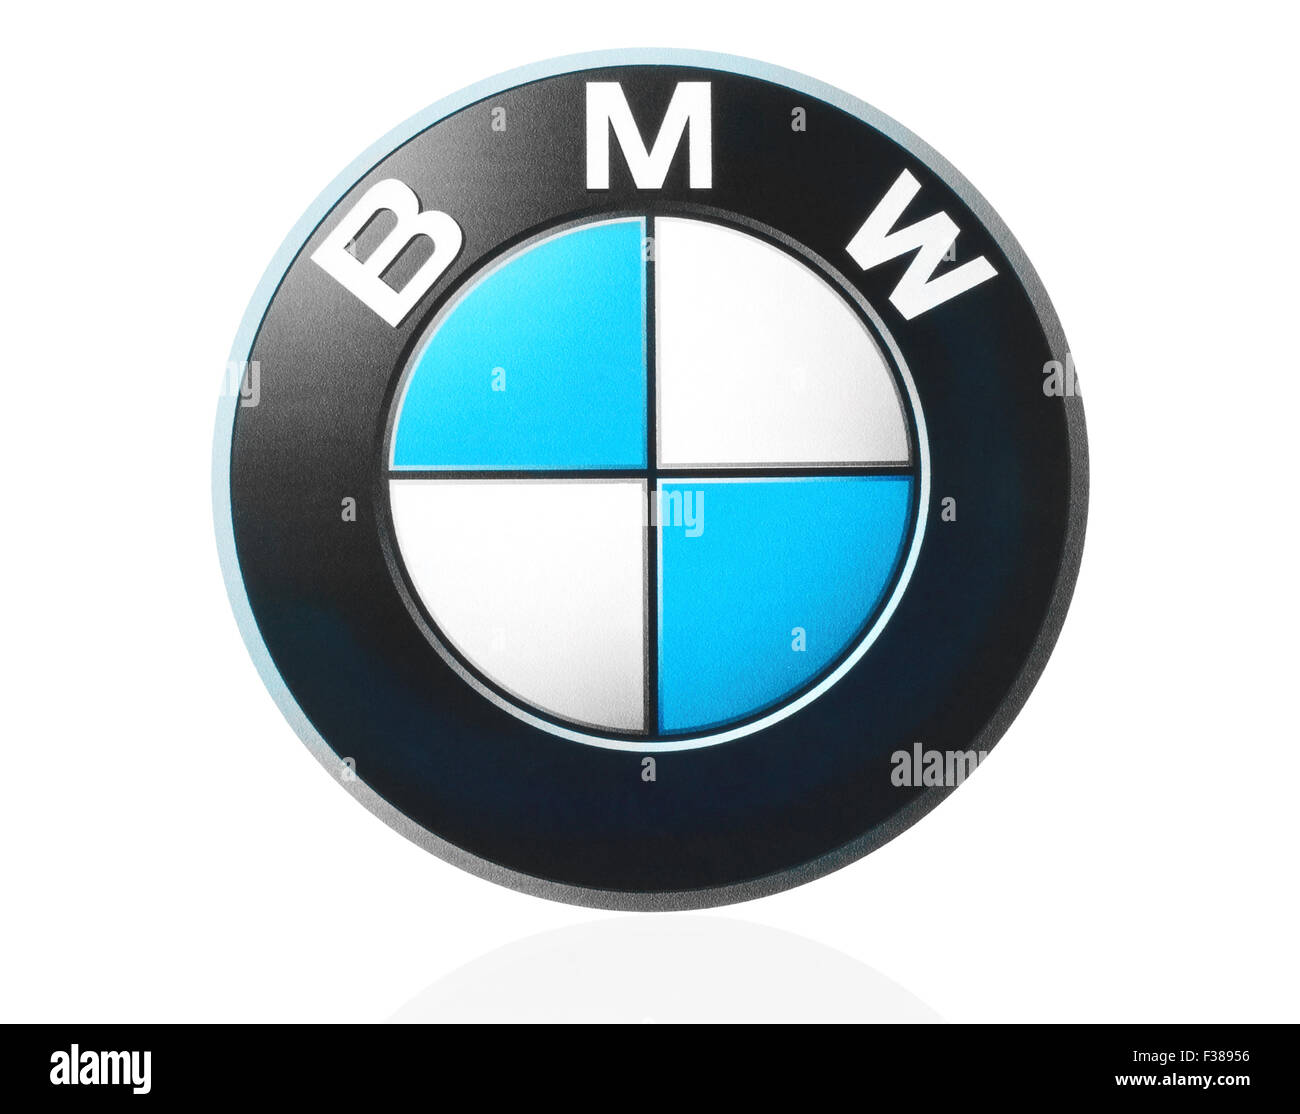 KIEV, UKRAINE - MARCH 21, 2015: BMW logo printed on paper and placed on white background. - Stock Image